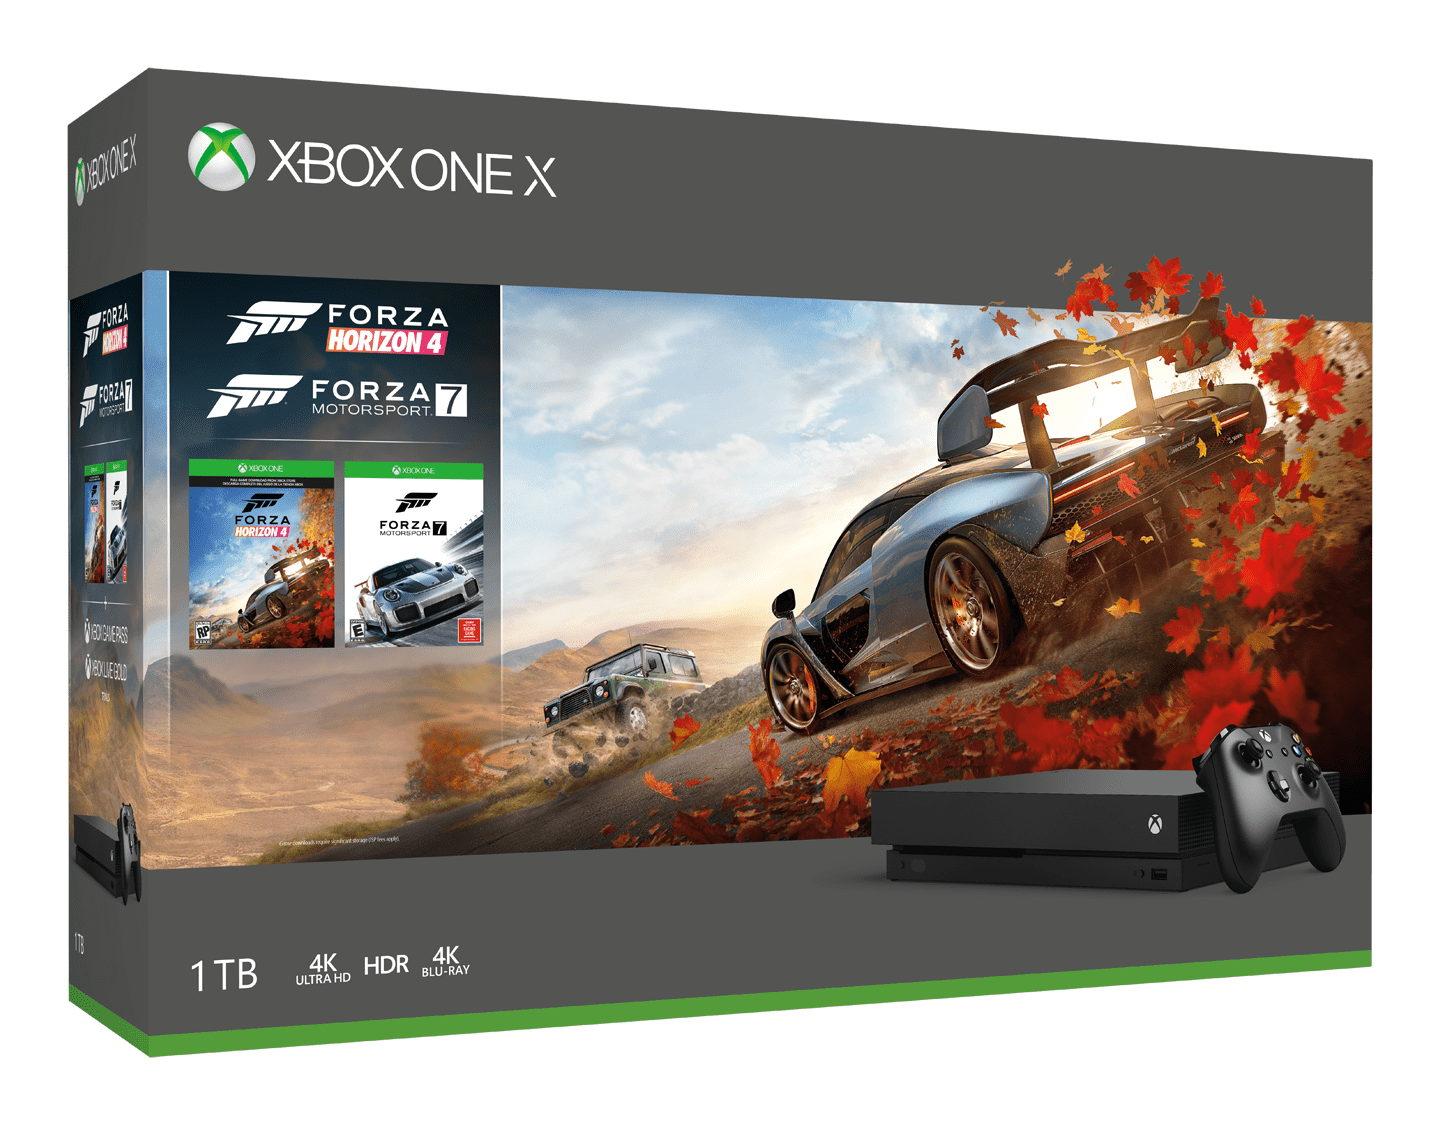 Xbox One X Forza MotorSport games console